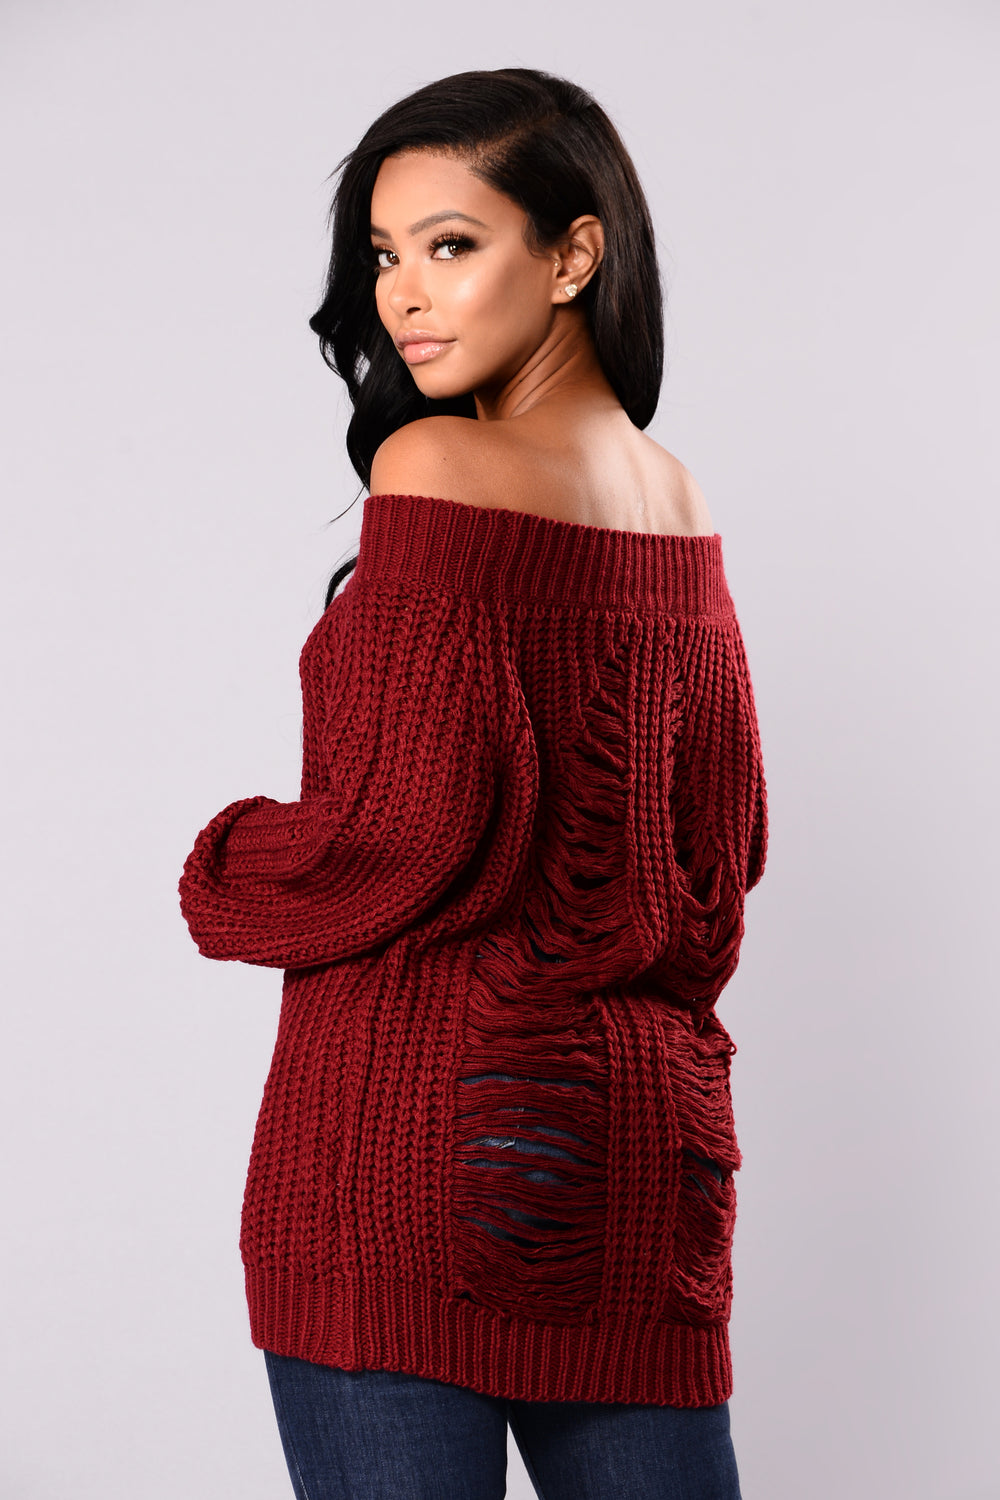 I'll Never Let Go Sweater - Burgundy